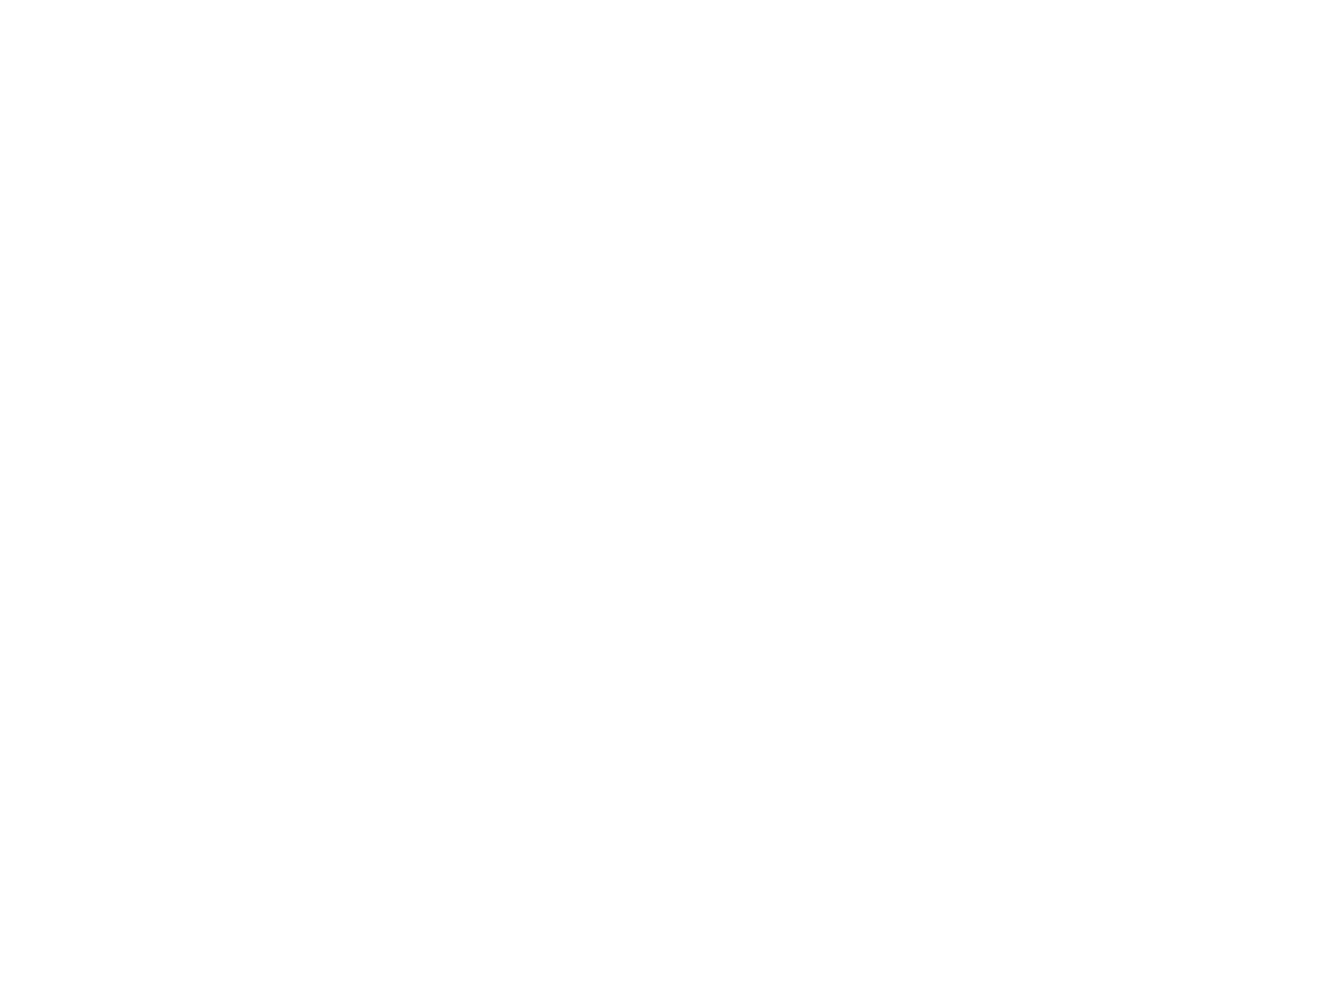 The Man Cave Conference